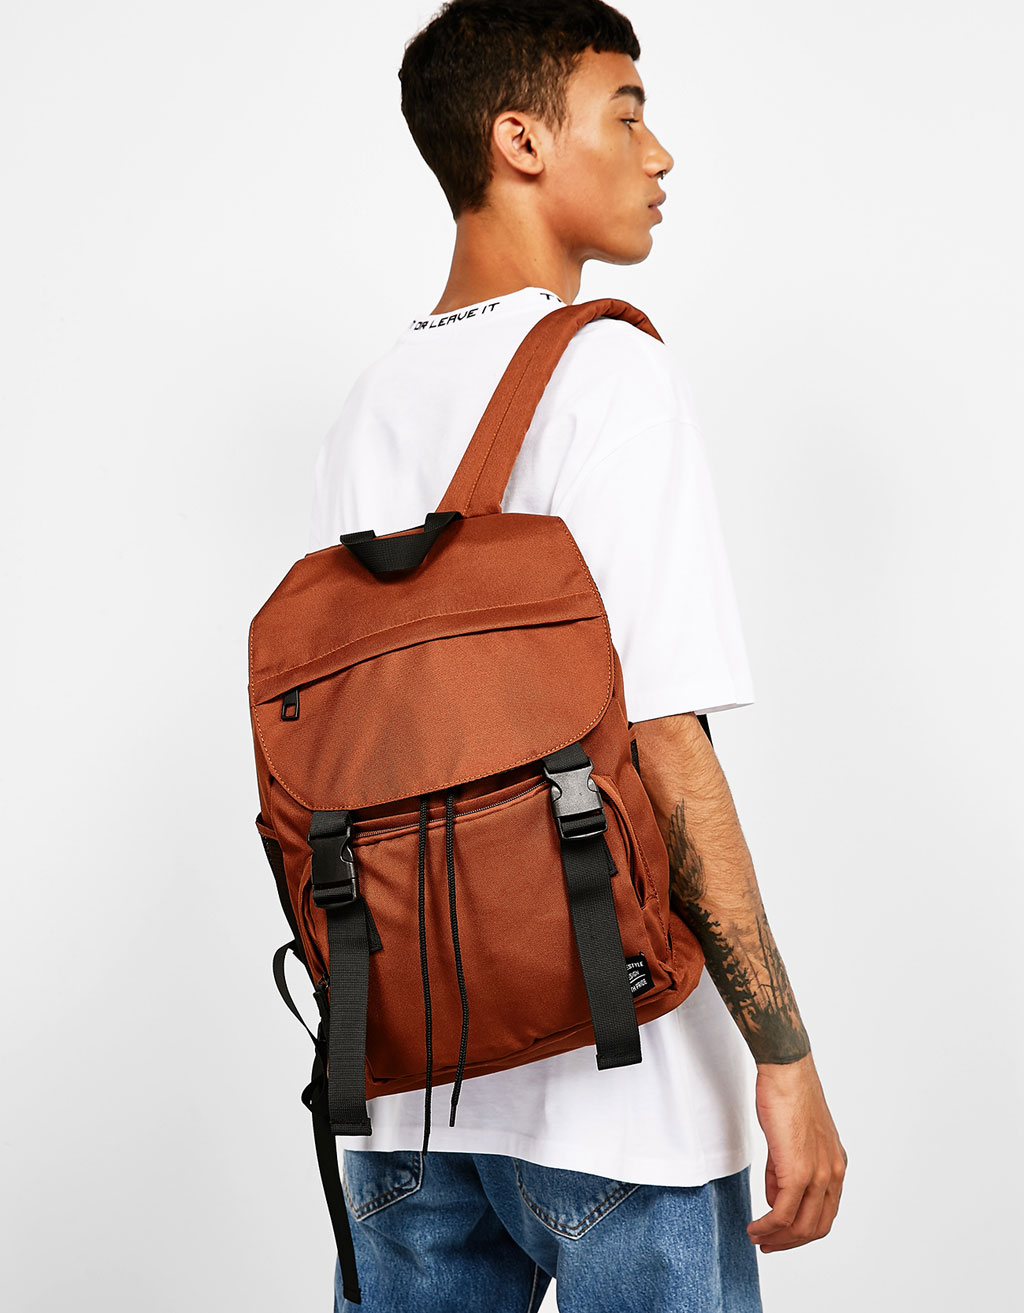 Double strap backpack